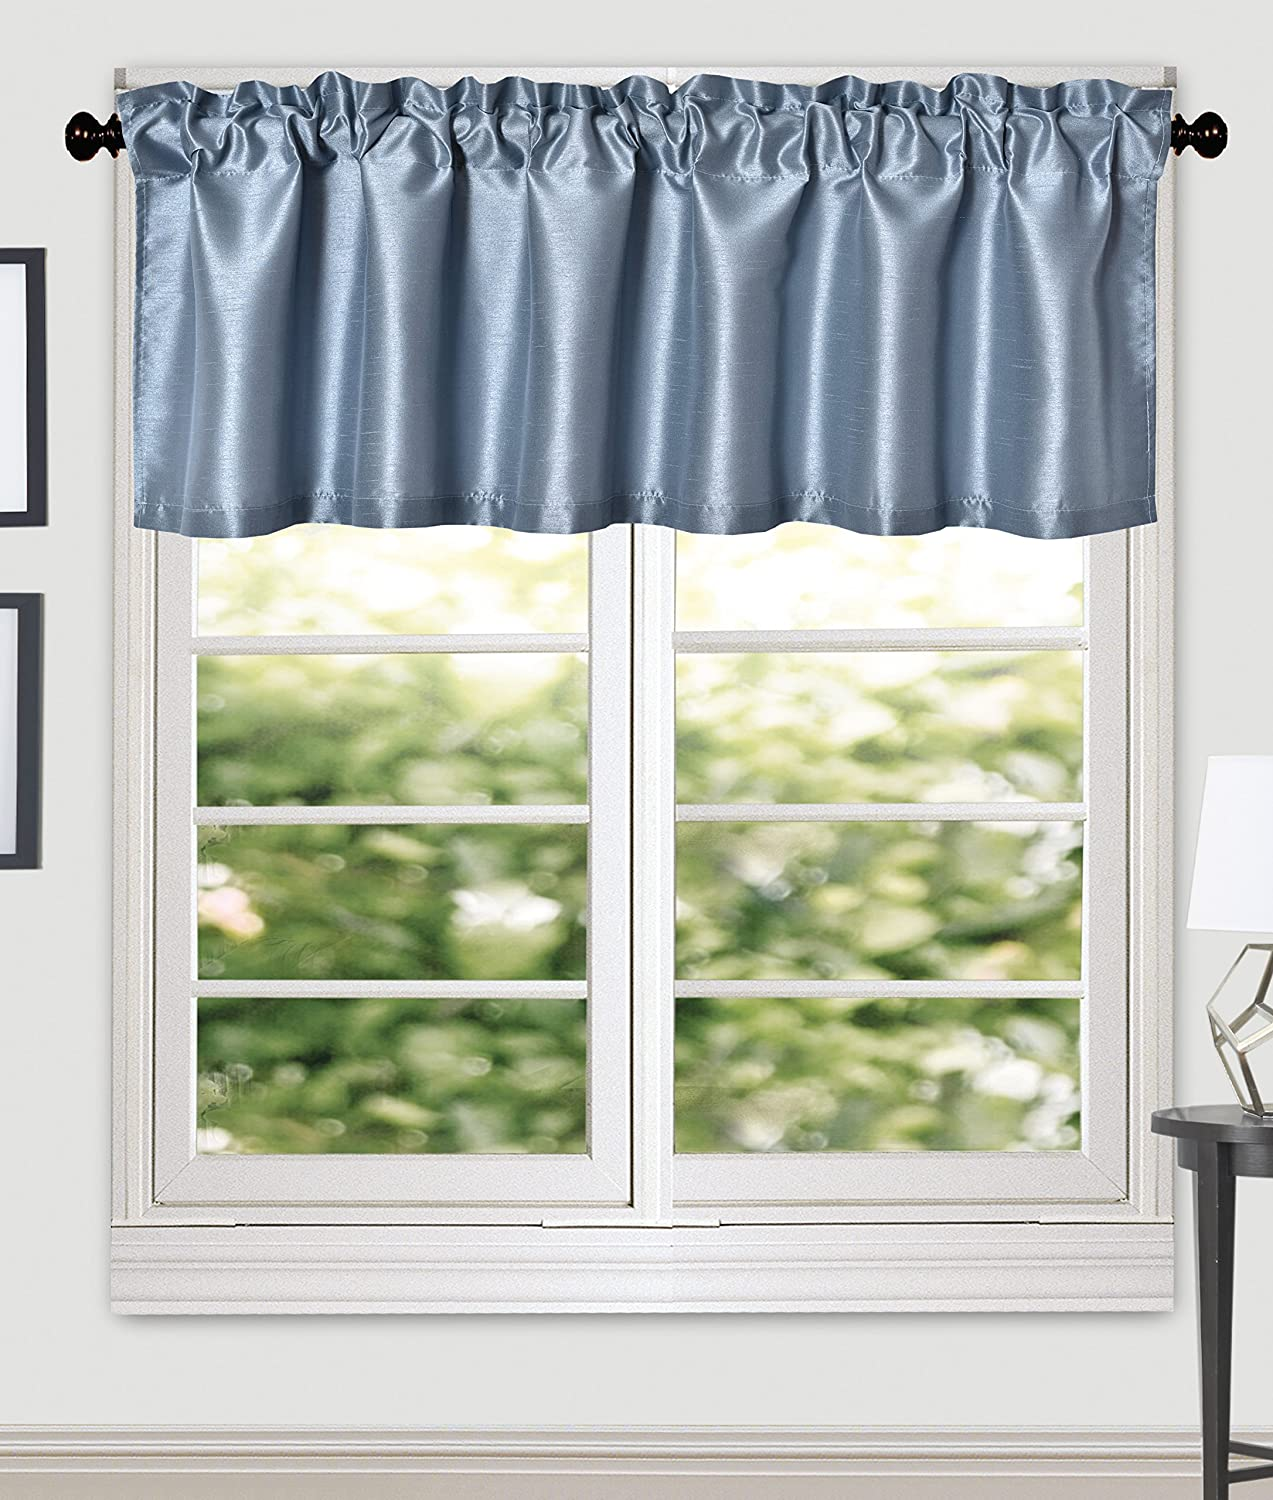 Eggplant Solid Faux Silk Window Valance Aiking Home 56 By 16 Inches Pack of 2